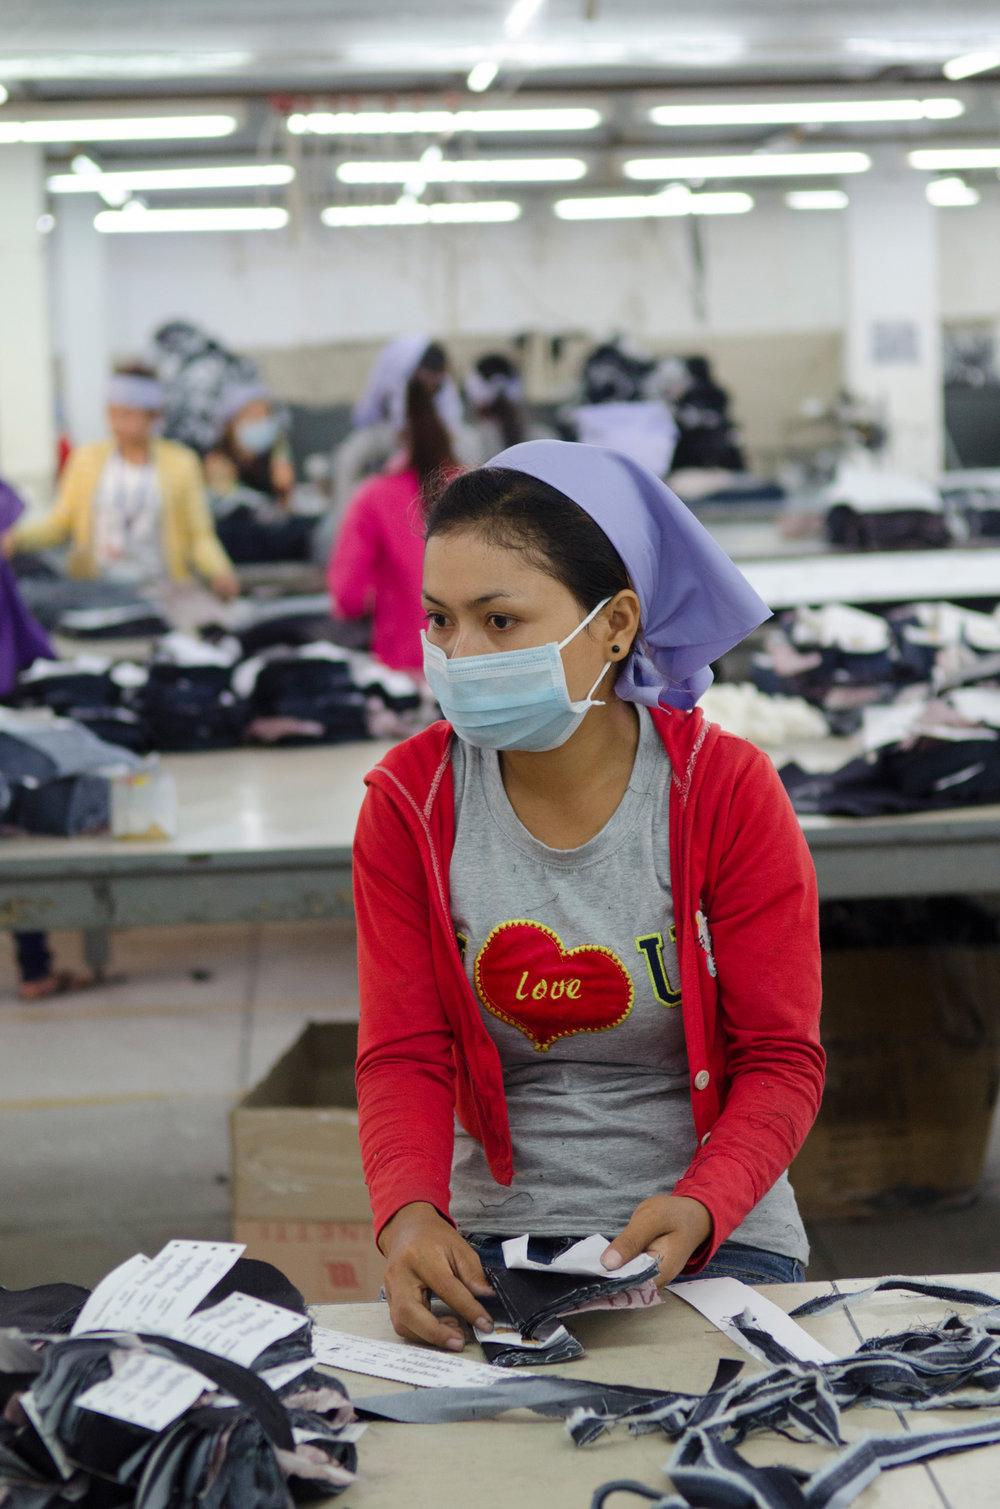 A worker at the Meng Ieng Group (MIG) Garment Factory sorts and bundles pocket patches for denim jeans on the main factory floor in Phnom Penh. Many in Phnom Penh's factories wear face masks to filter out the dust created from cutting cloth.